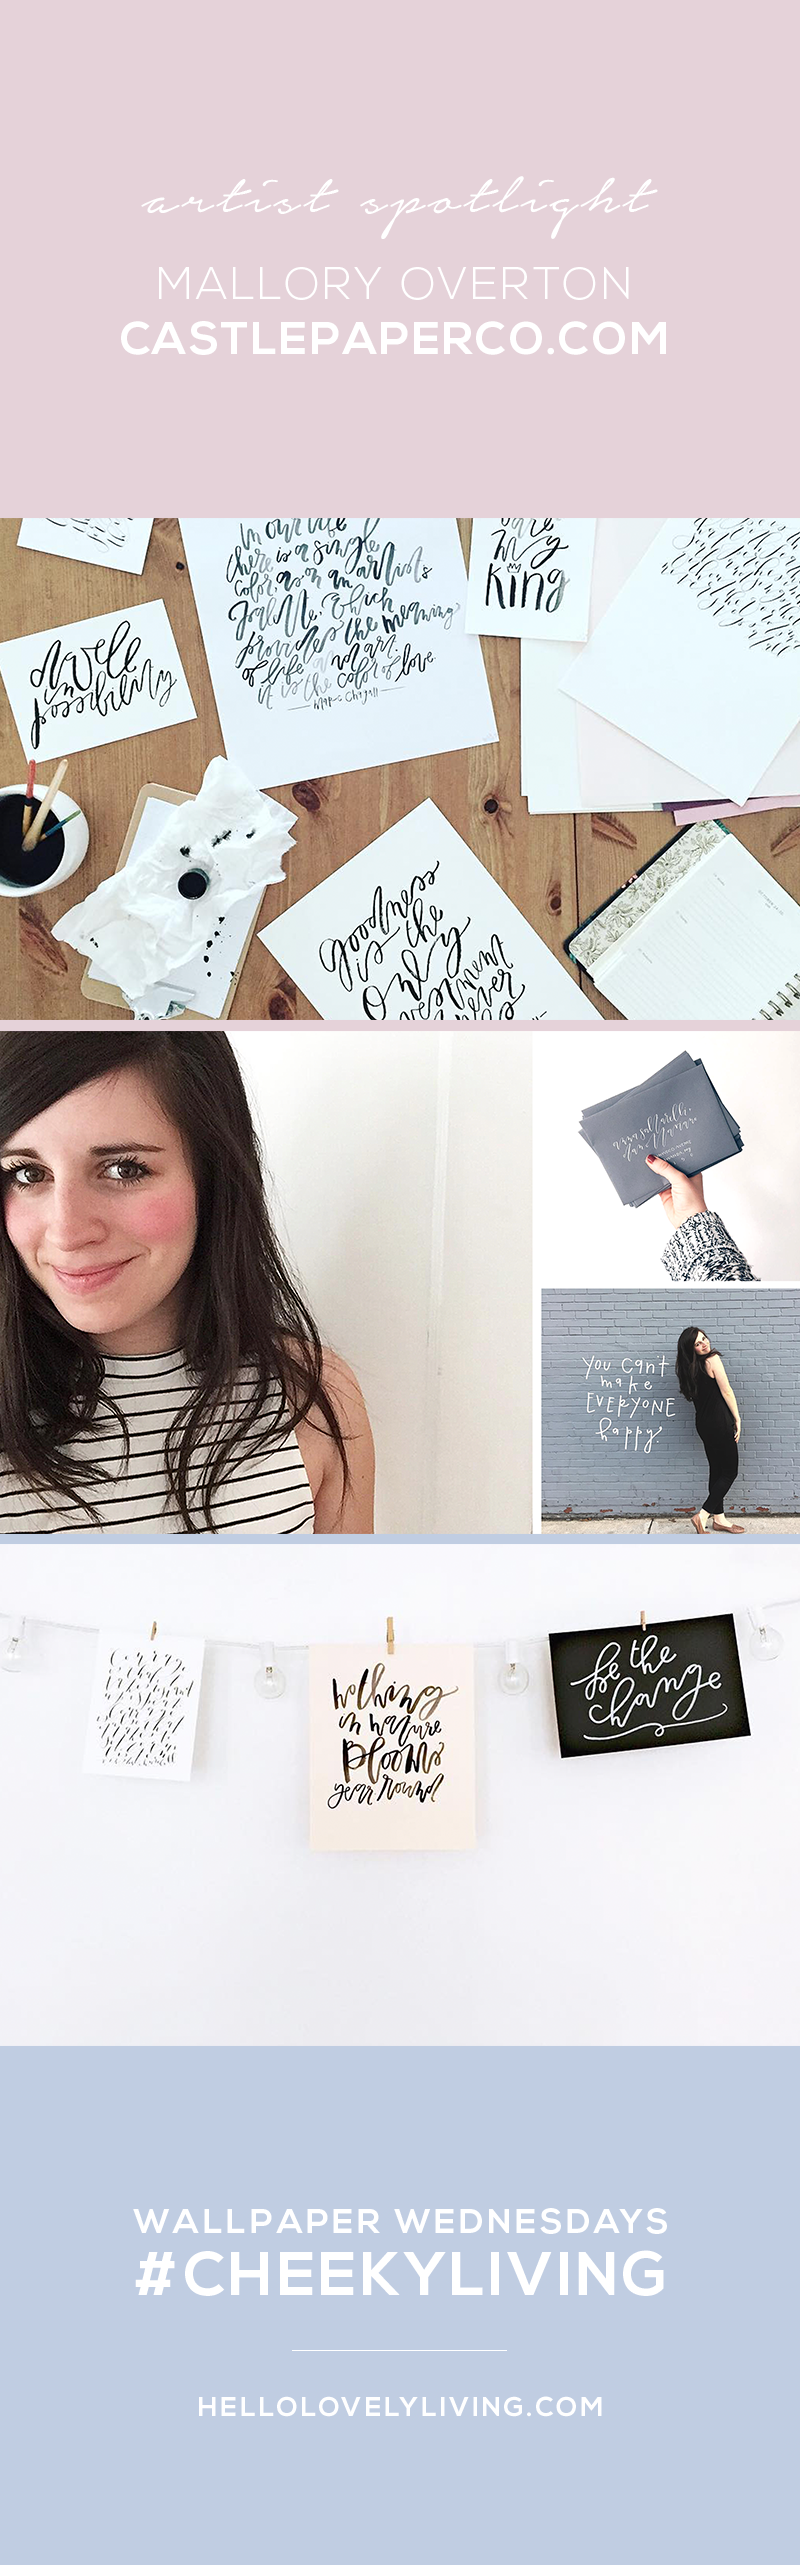 Wallpapers Wednesdays 31 | Artist Feature - Mallory Overton